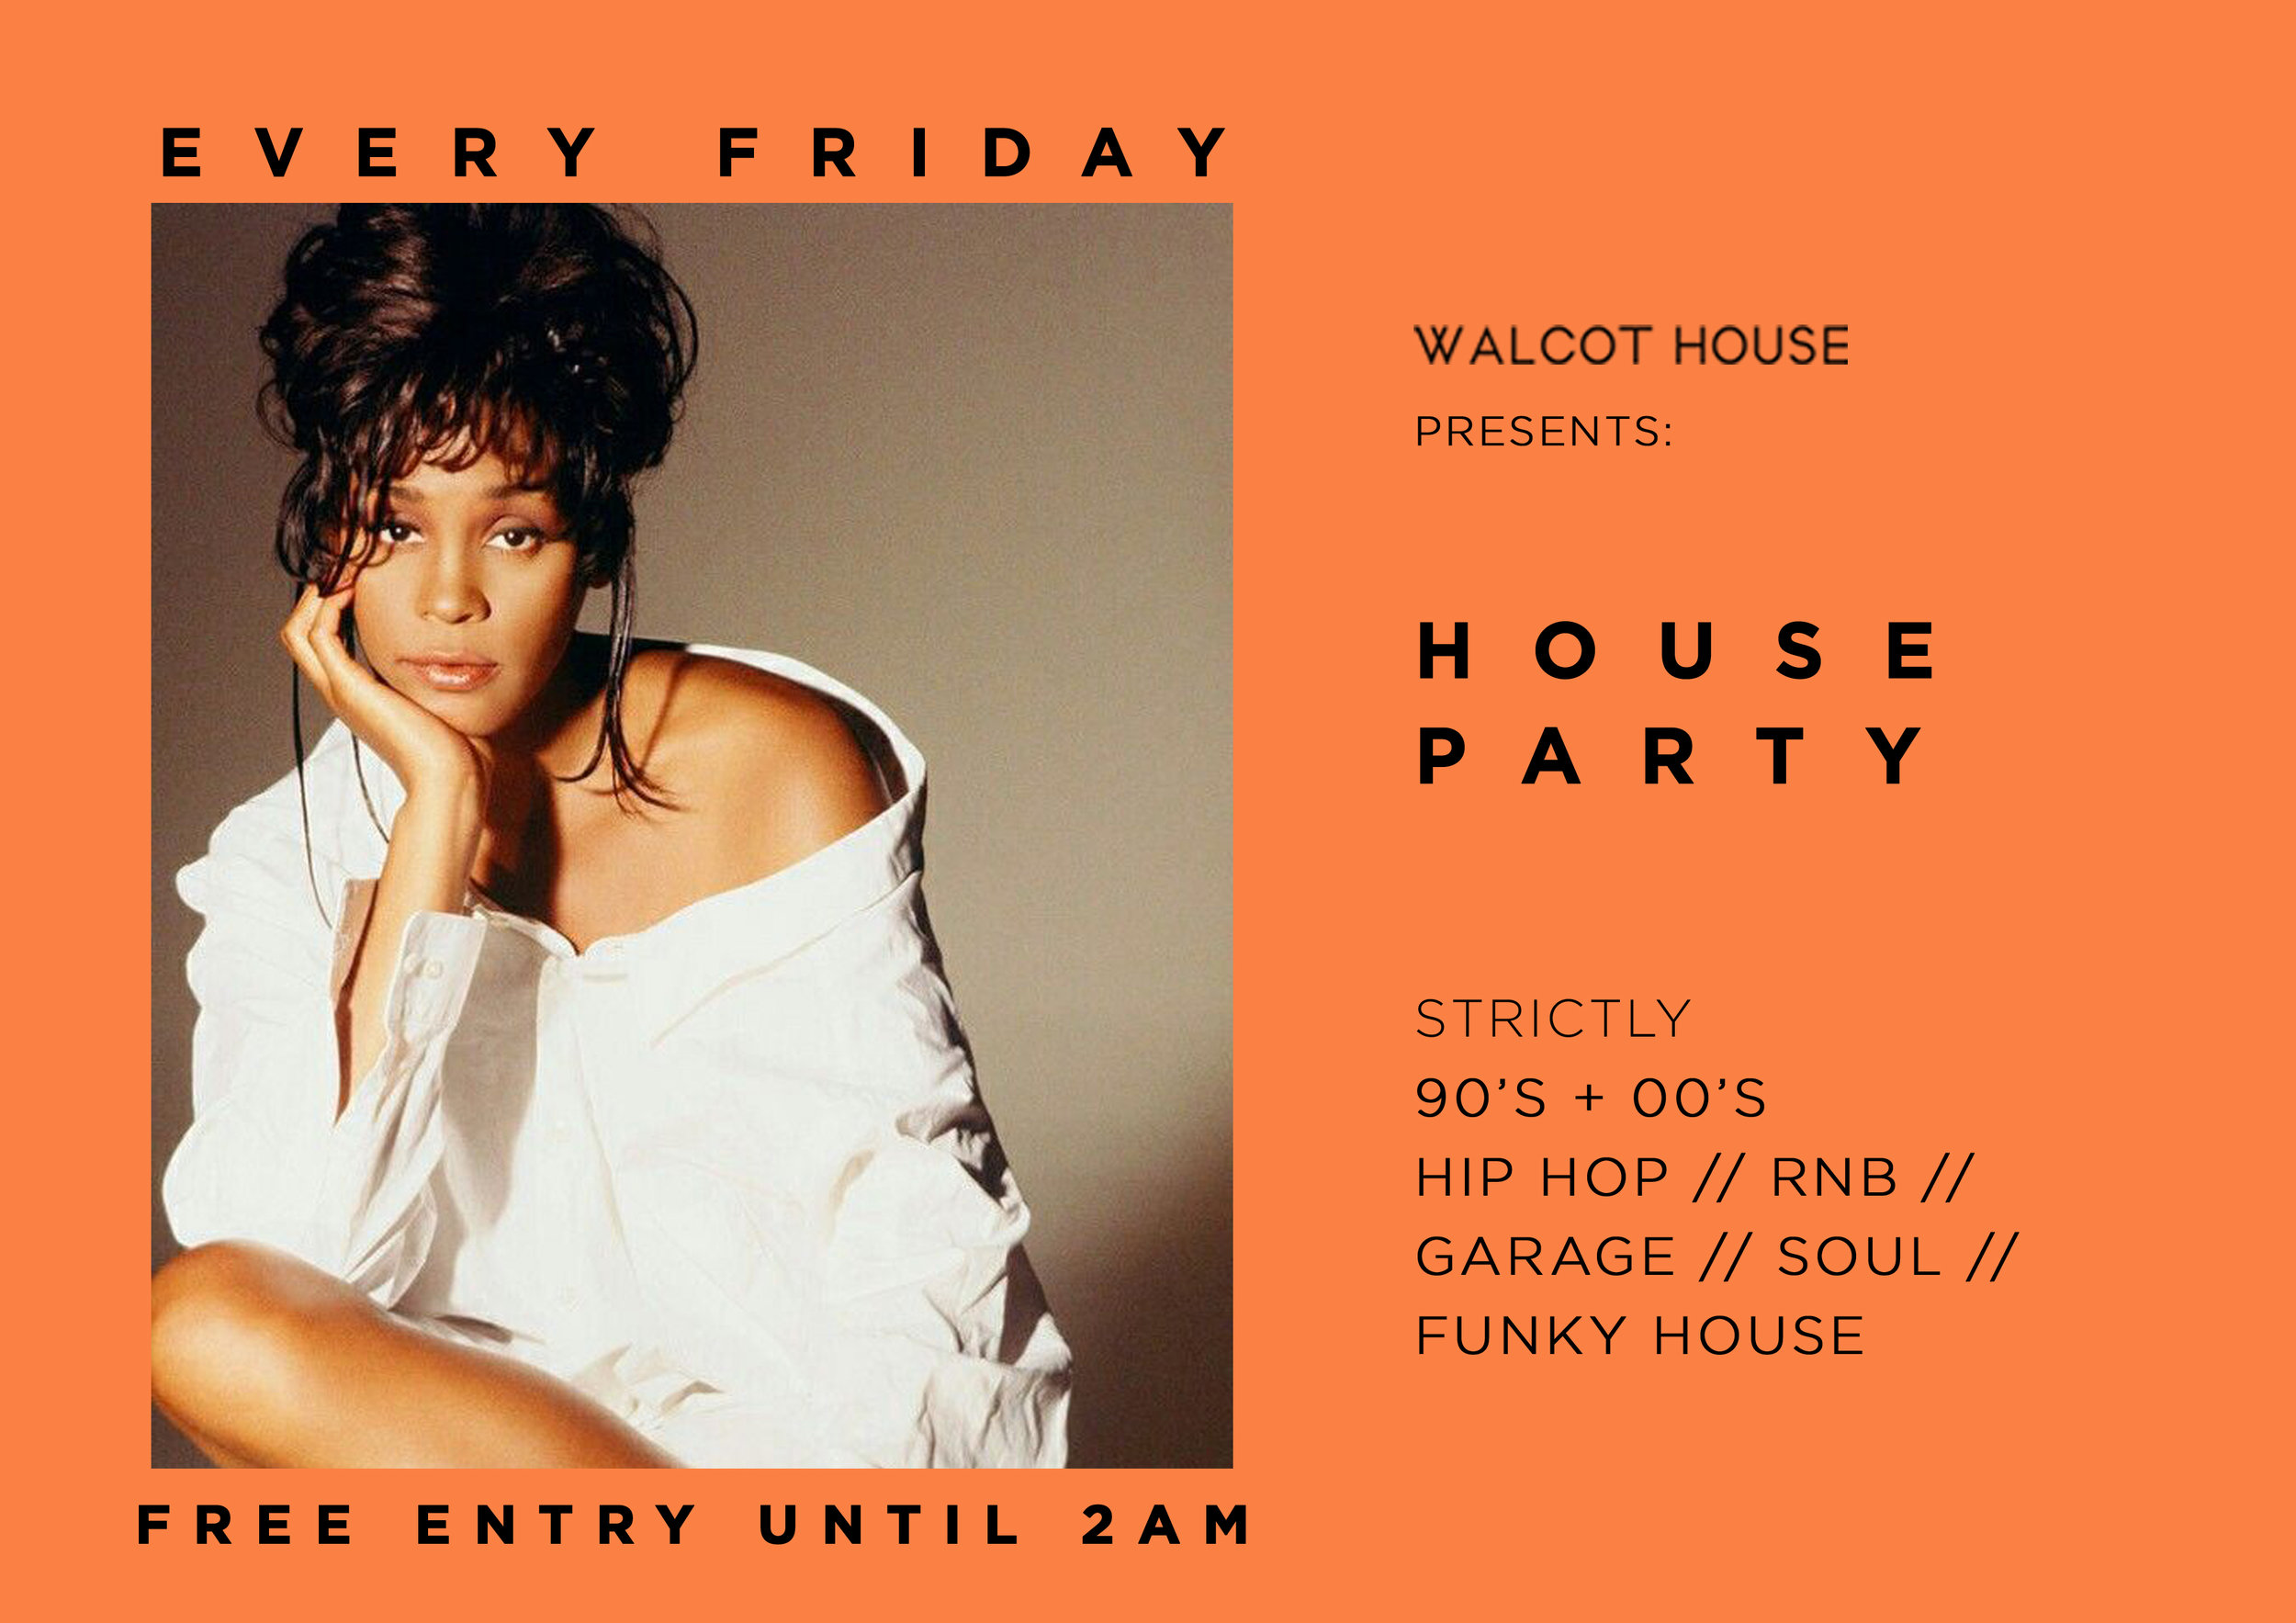 HOUSE PARTY FLYER whitney.jpg